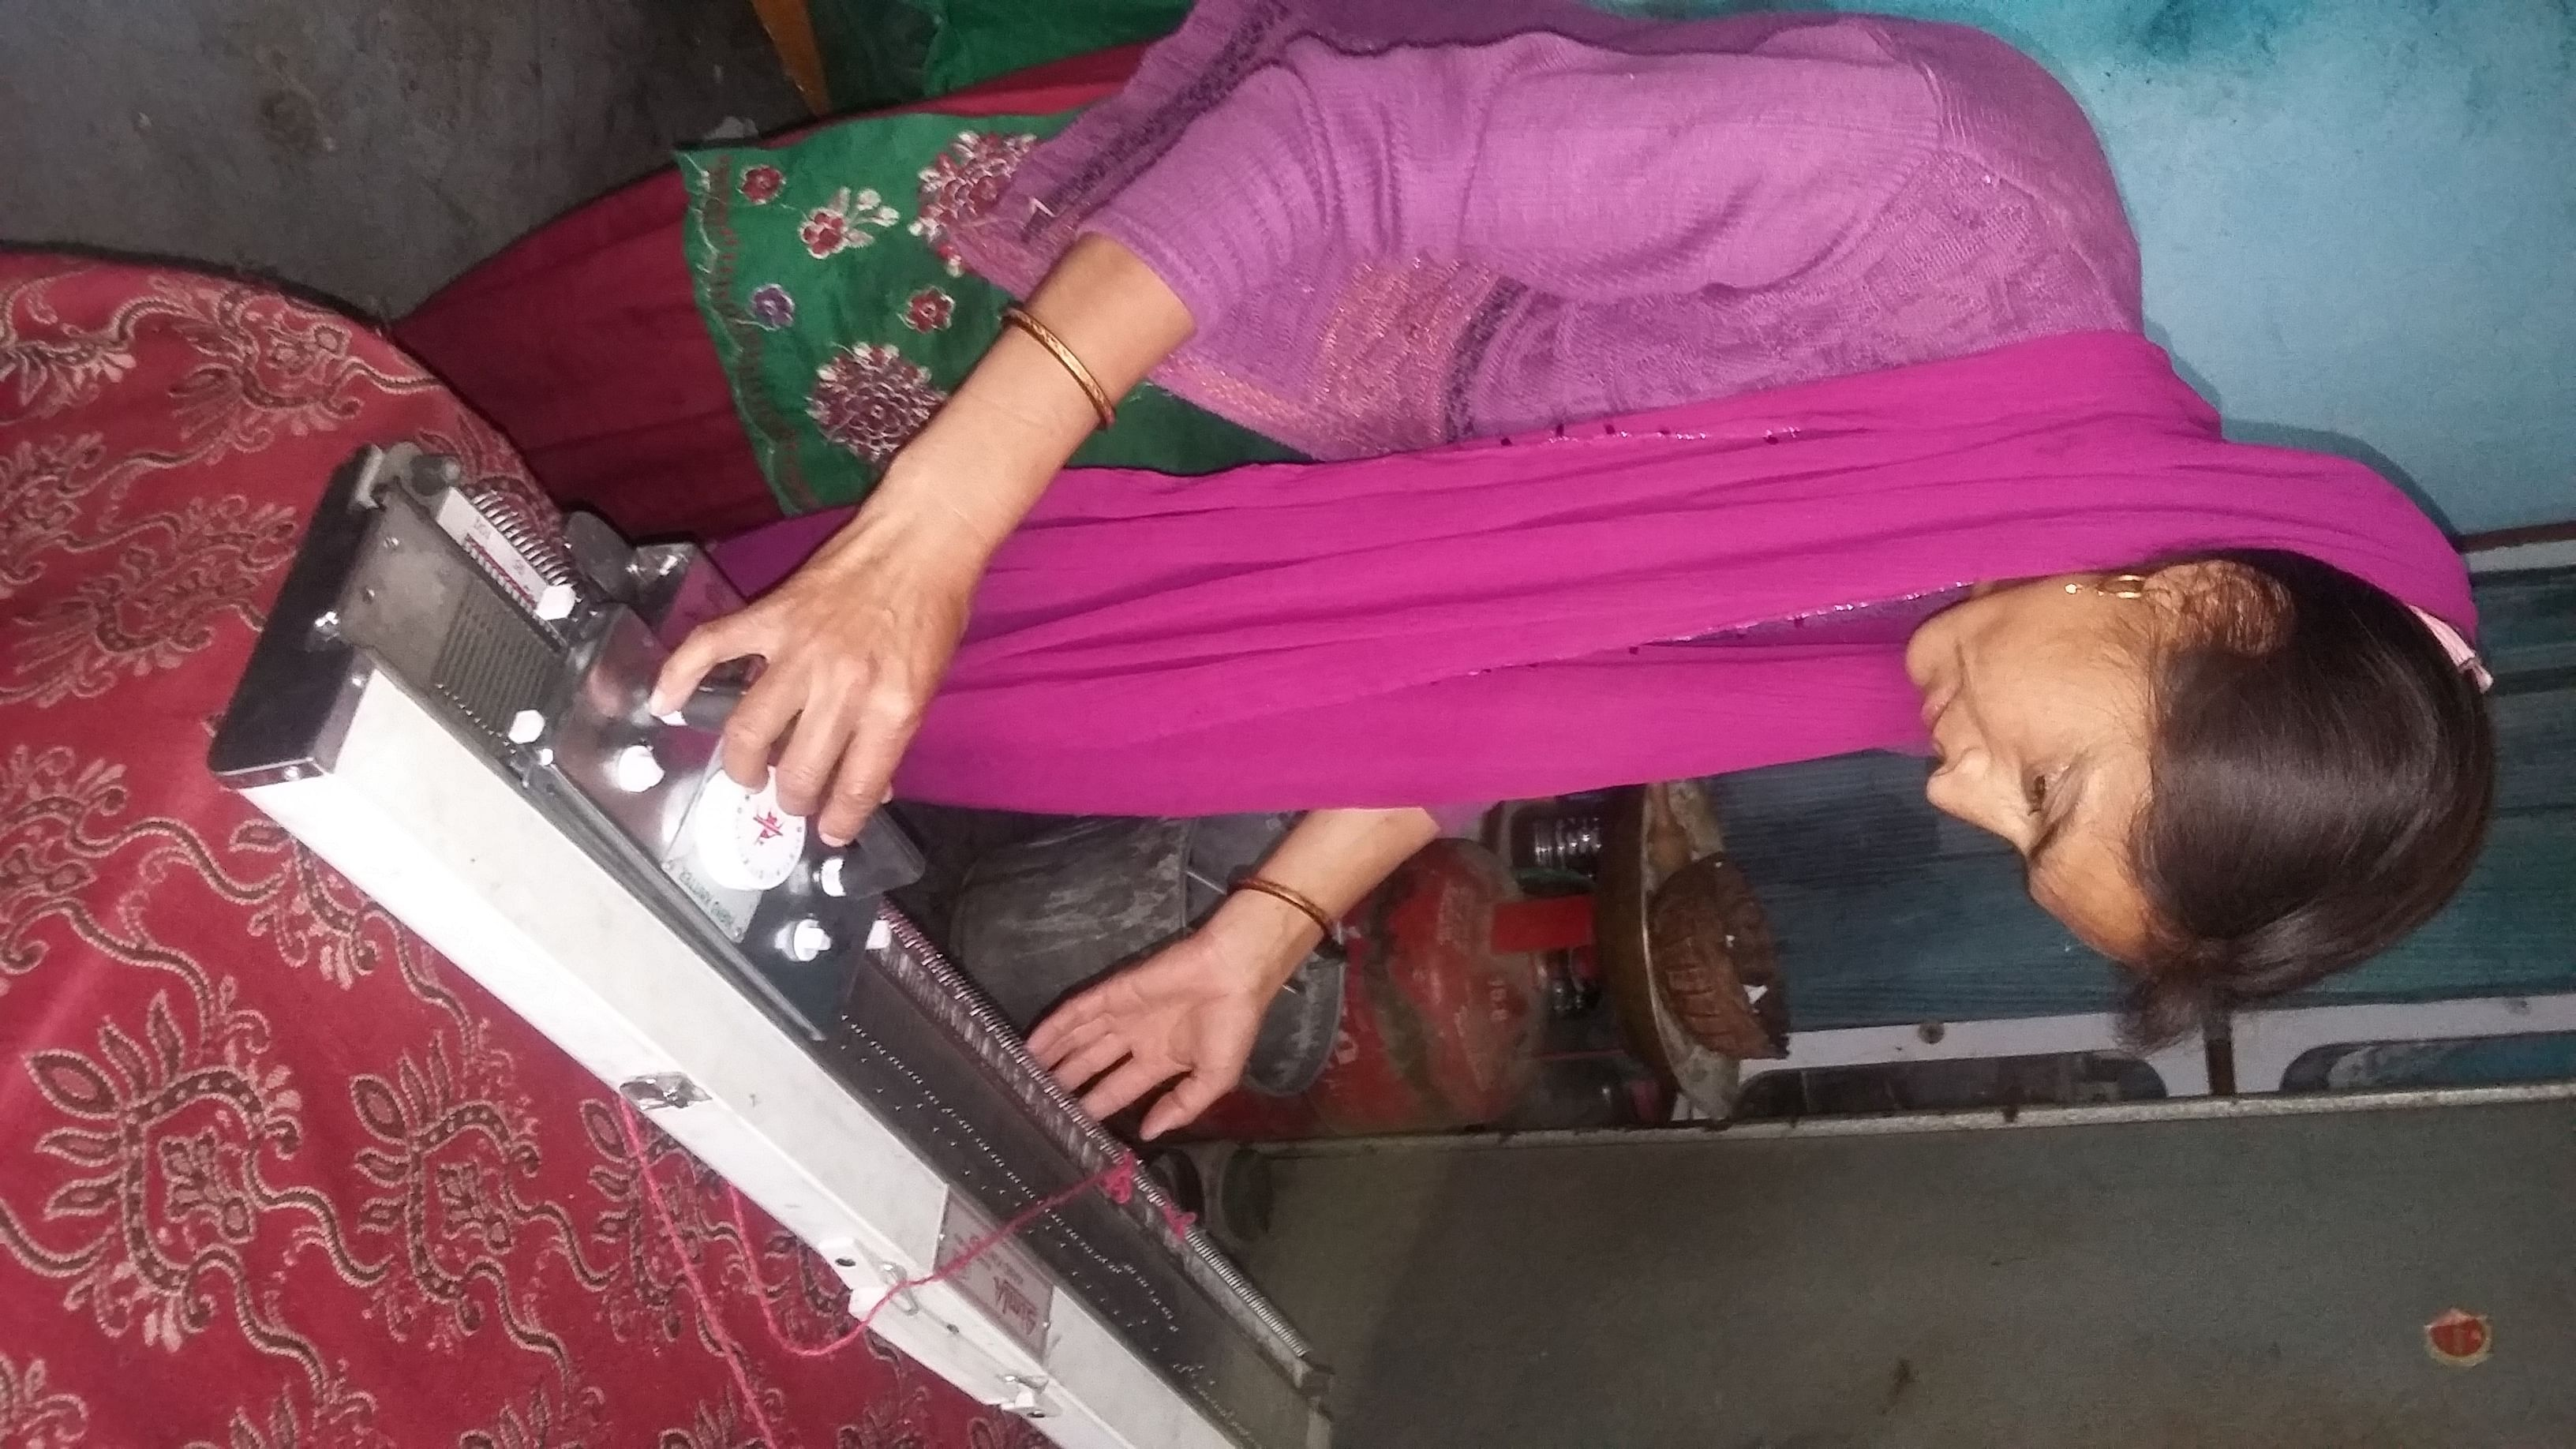 Gita Bisht, 33, of Chandrapuri, widowed in 2013, sees her knitting machine as the means to a better life someday. (Credit: Nitin Jugran Bahuguna\WFS)